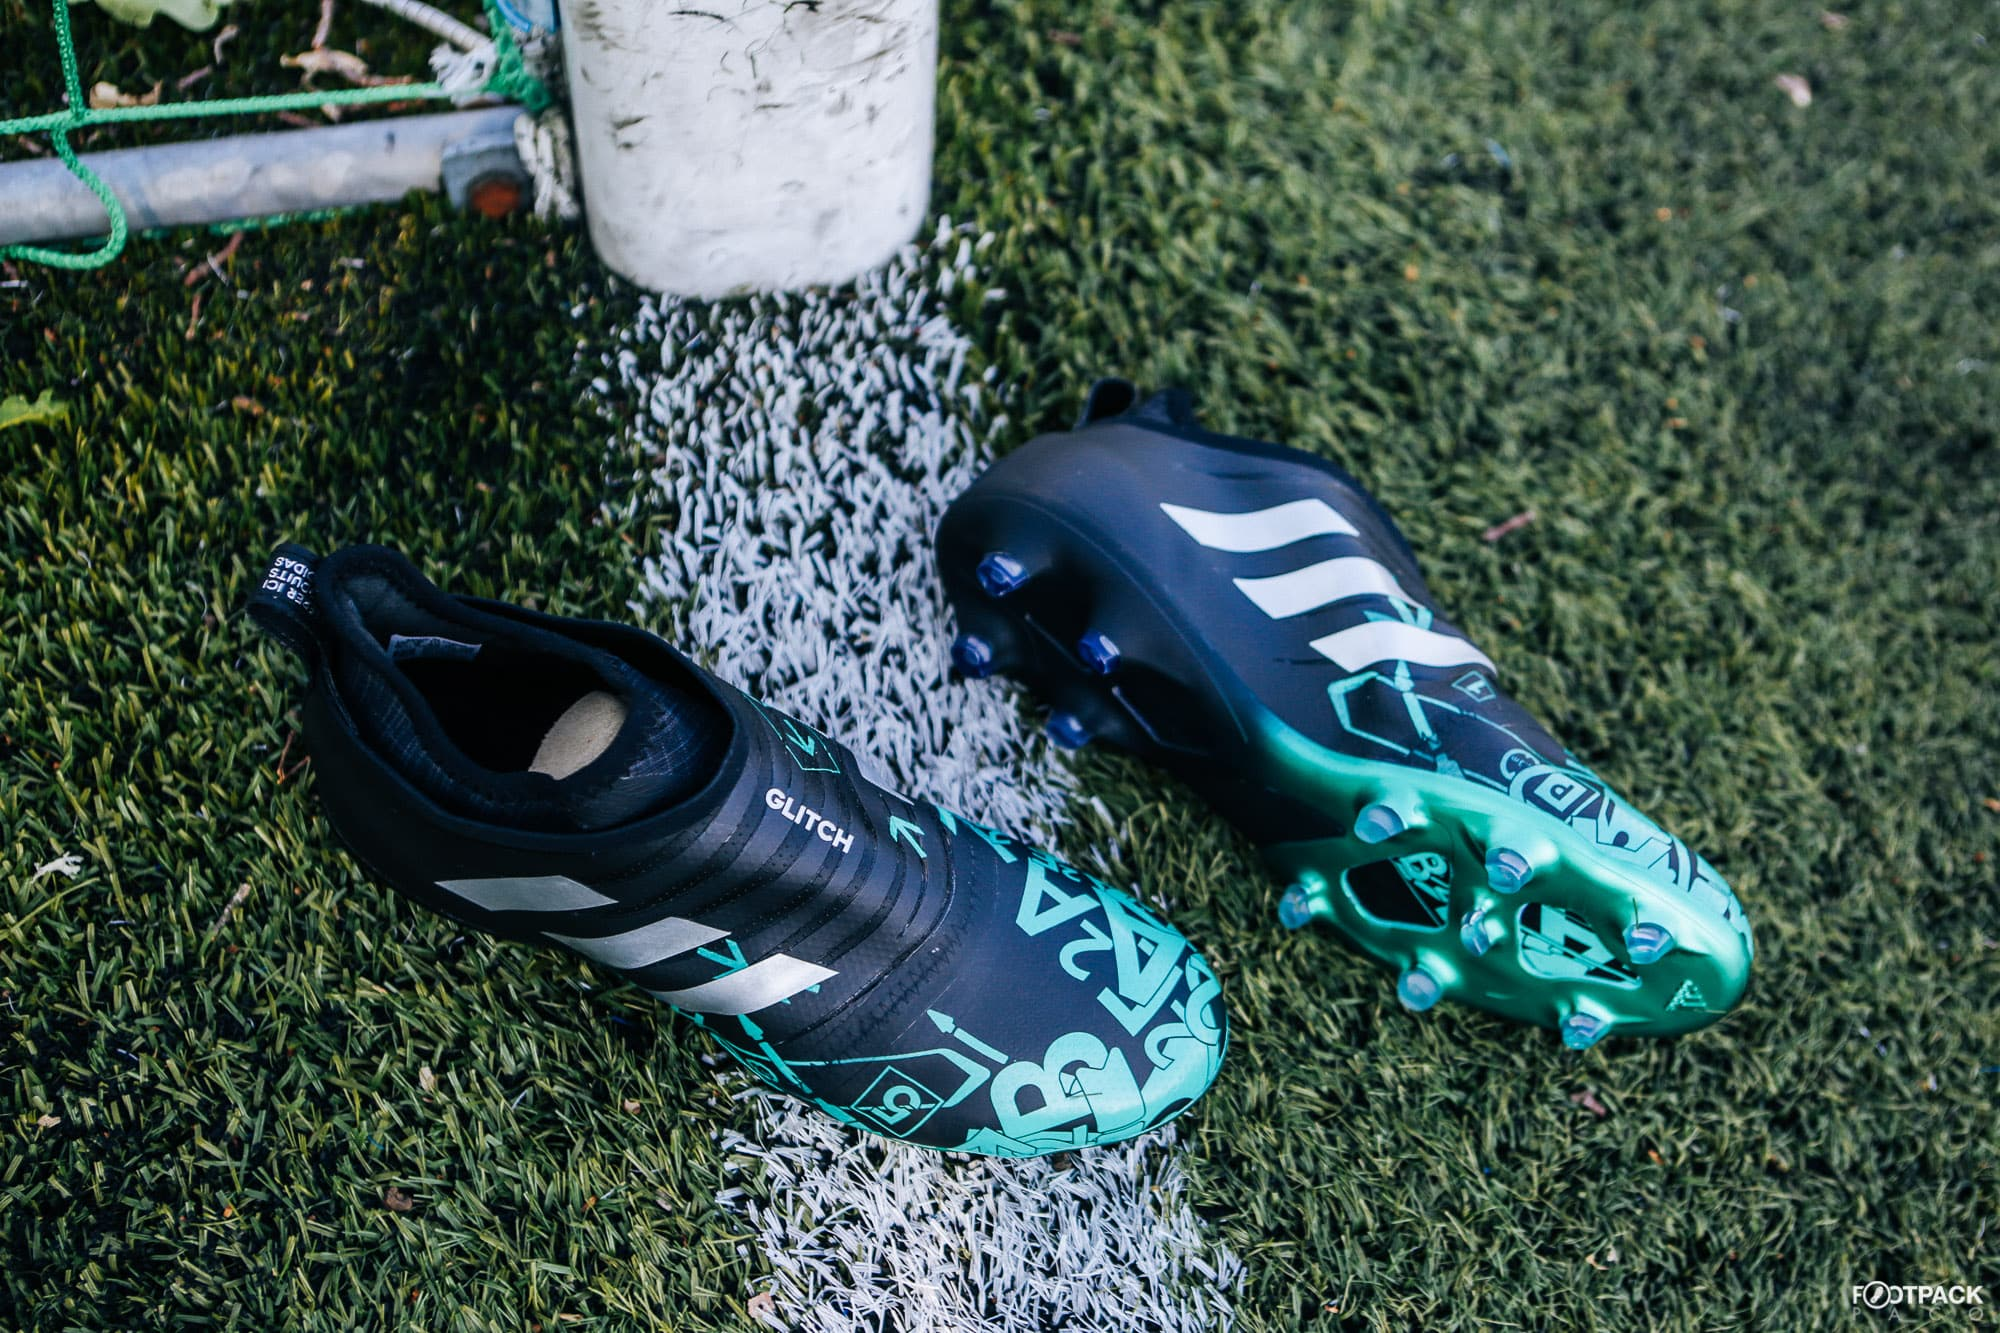 Chaussures-football-adidas-Glitch-skin-Paris-mai-2018-1